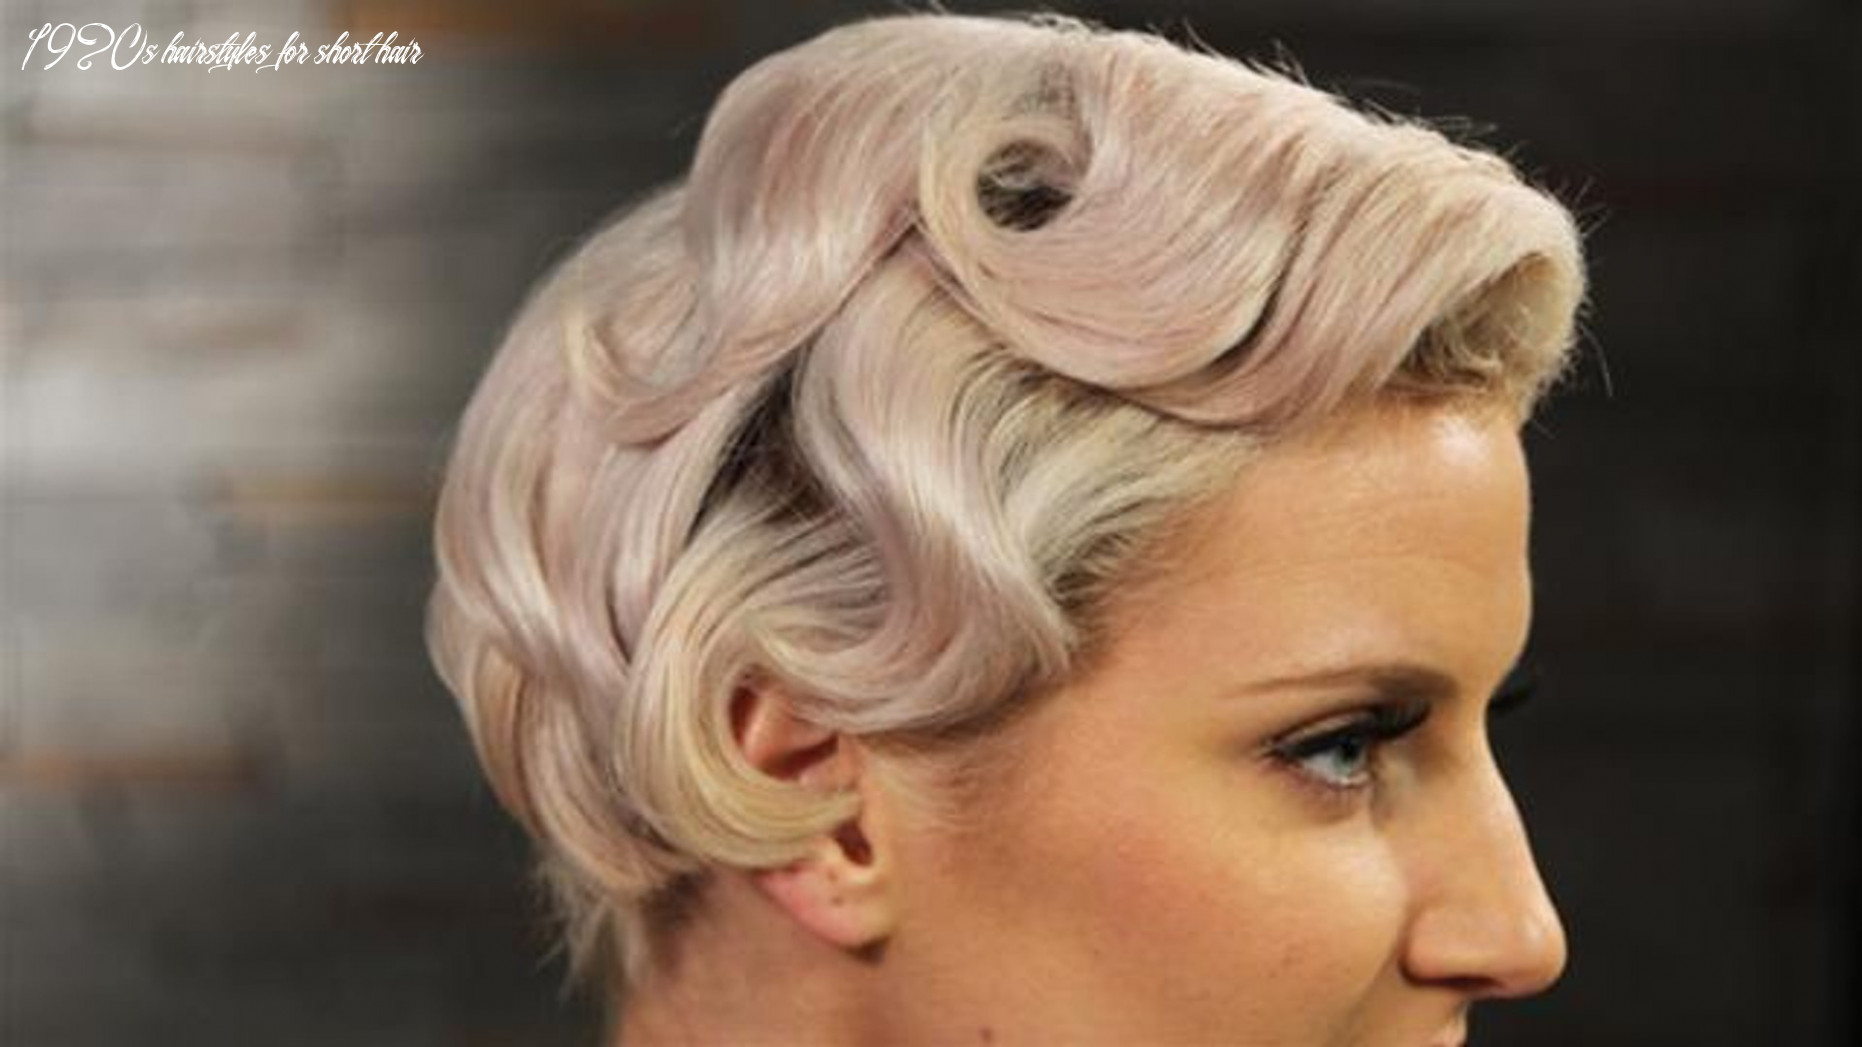 How to style 9s short hair 1920s hairstyles for short hair